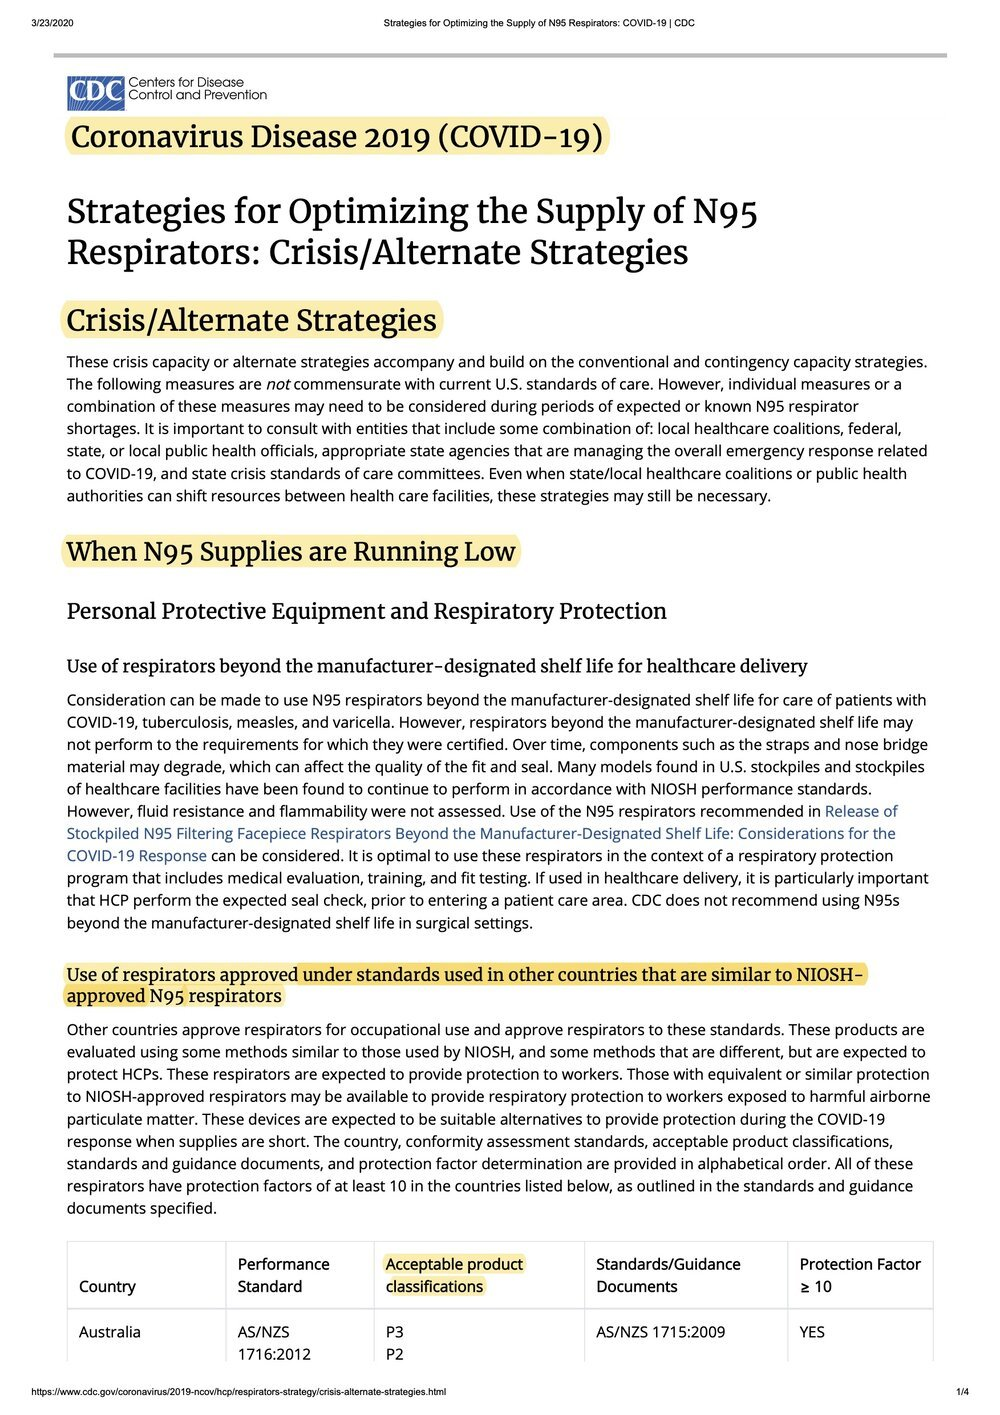 A-Strategies-for-Optimizing-the-Supply-of-N95-Respirators-COVID-19-CDC-KN95-Dta